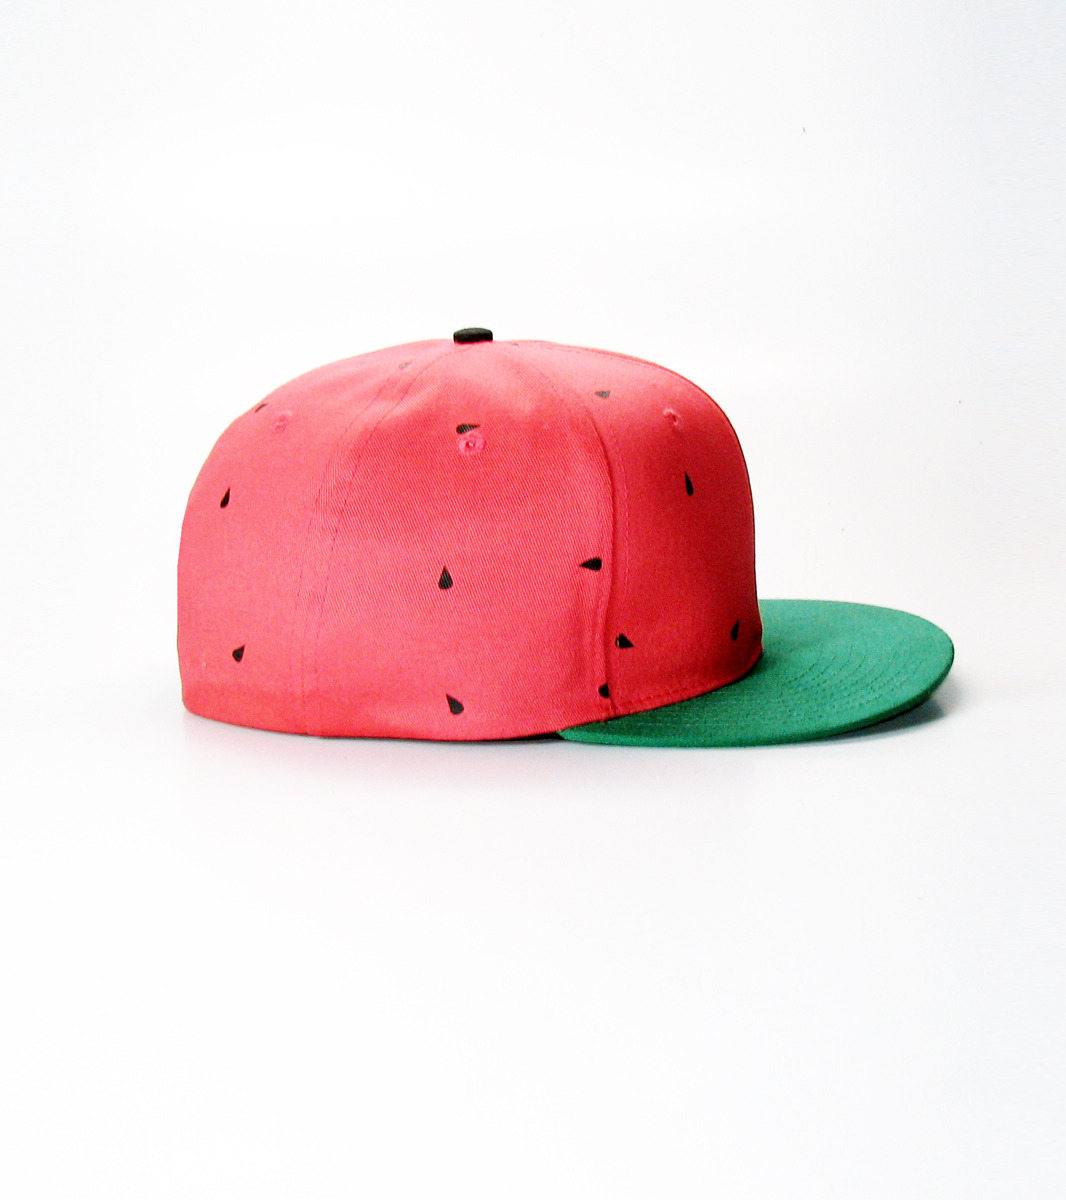 themaxdavis:  Oliver Clark's Watermelon Print Fitted Hat Pre-order for $20 at Oliver Clark